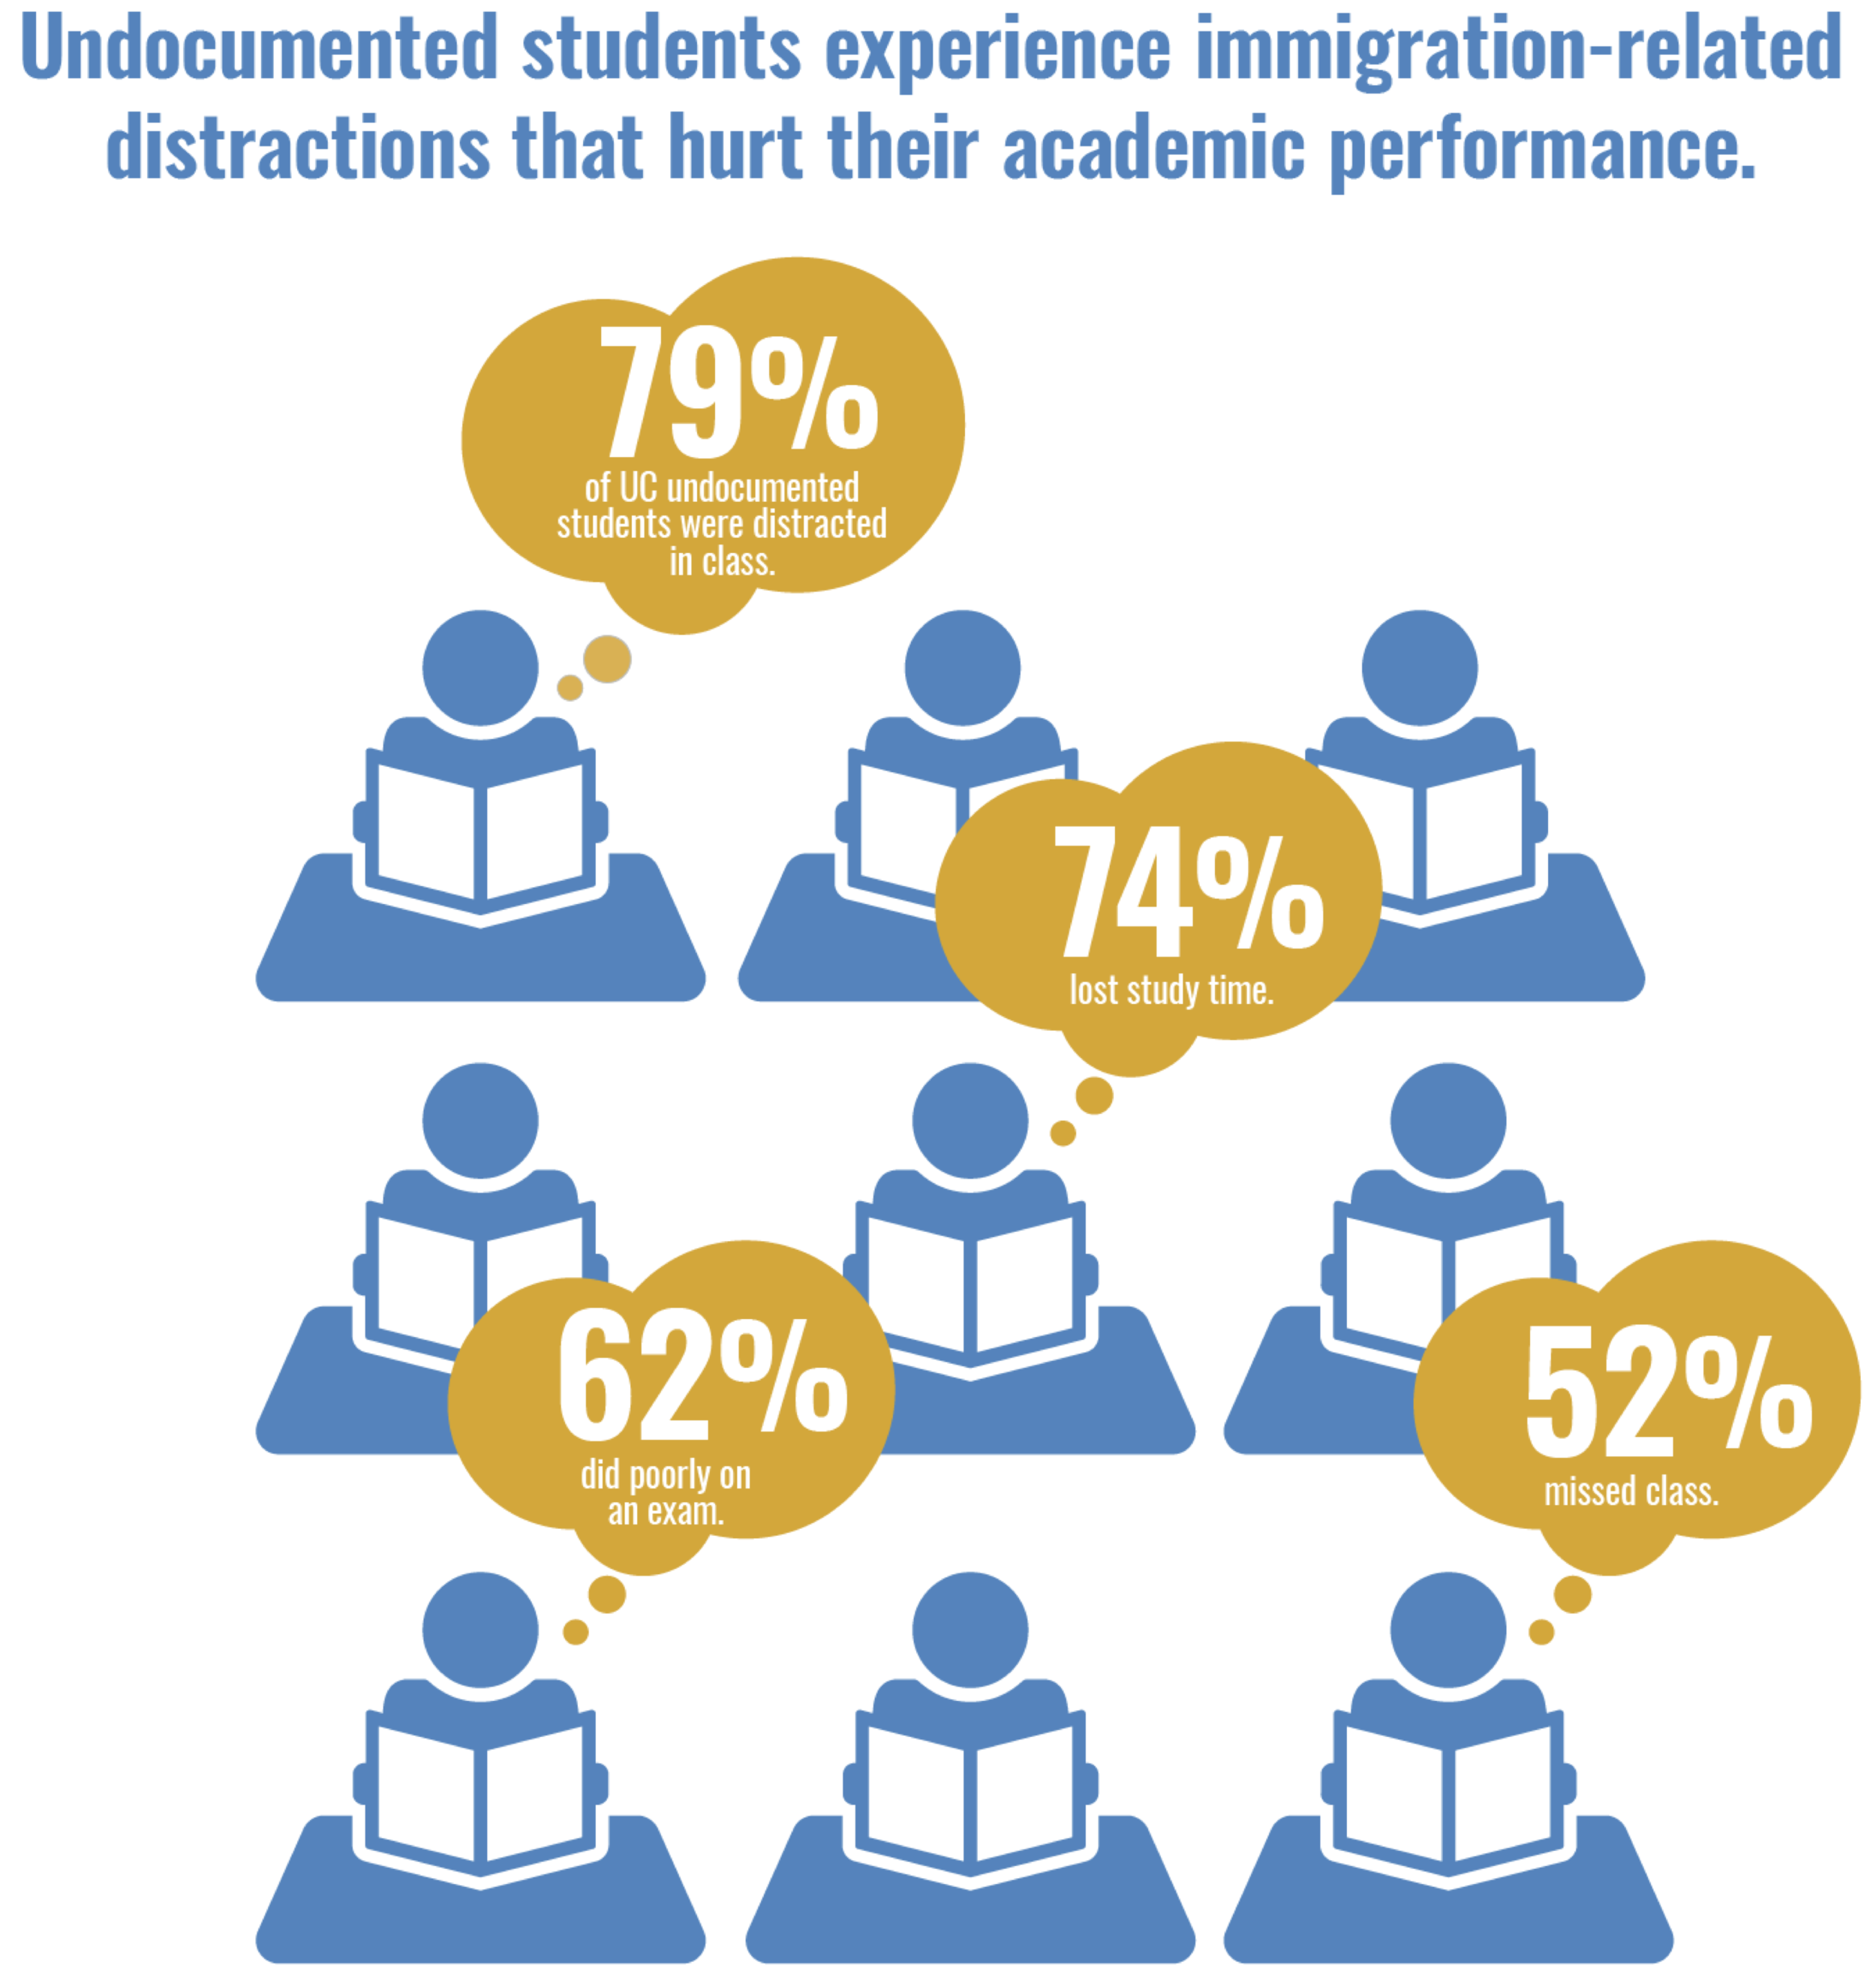 Distracted: Undocumented Students' Disrupted Academics - Undocumented students academic engagement is disrupted by a variety of immigration-related concerns. These distractions have cumulative consequences for academic engagement and performance. This 2-page brief explores sources of distraction and offers policy recommendations.